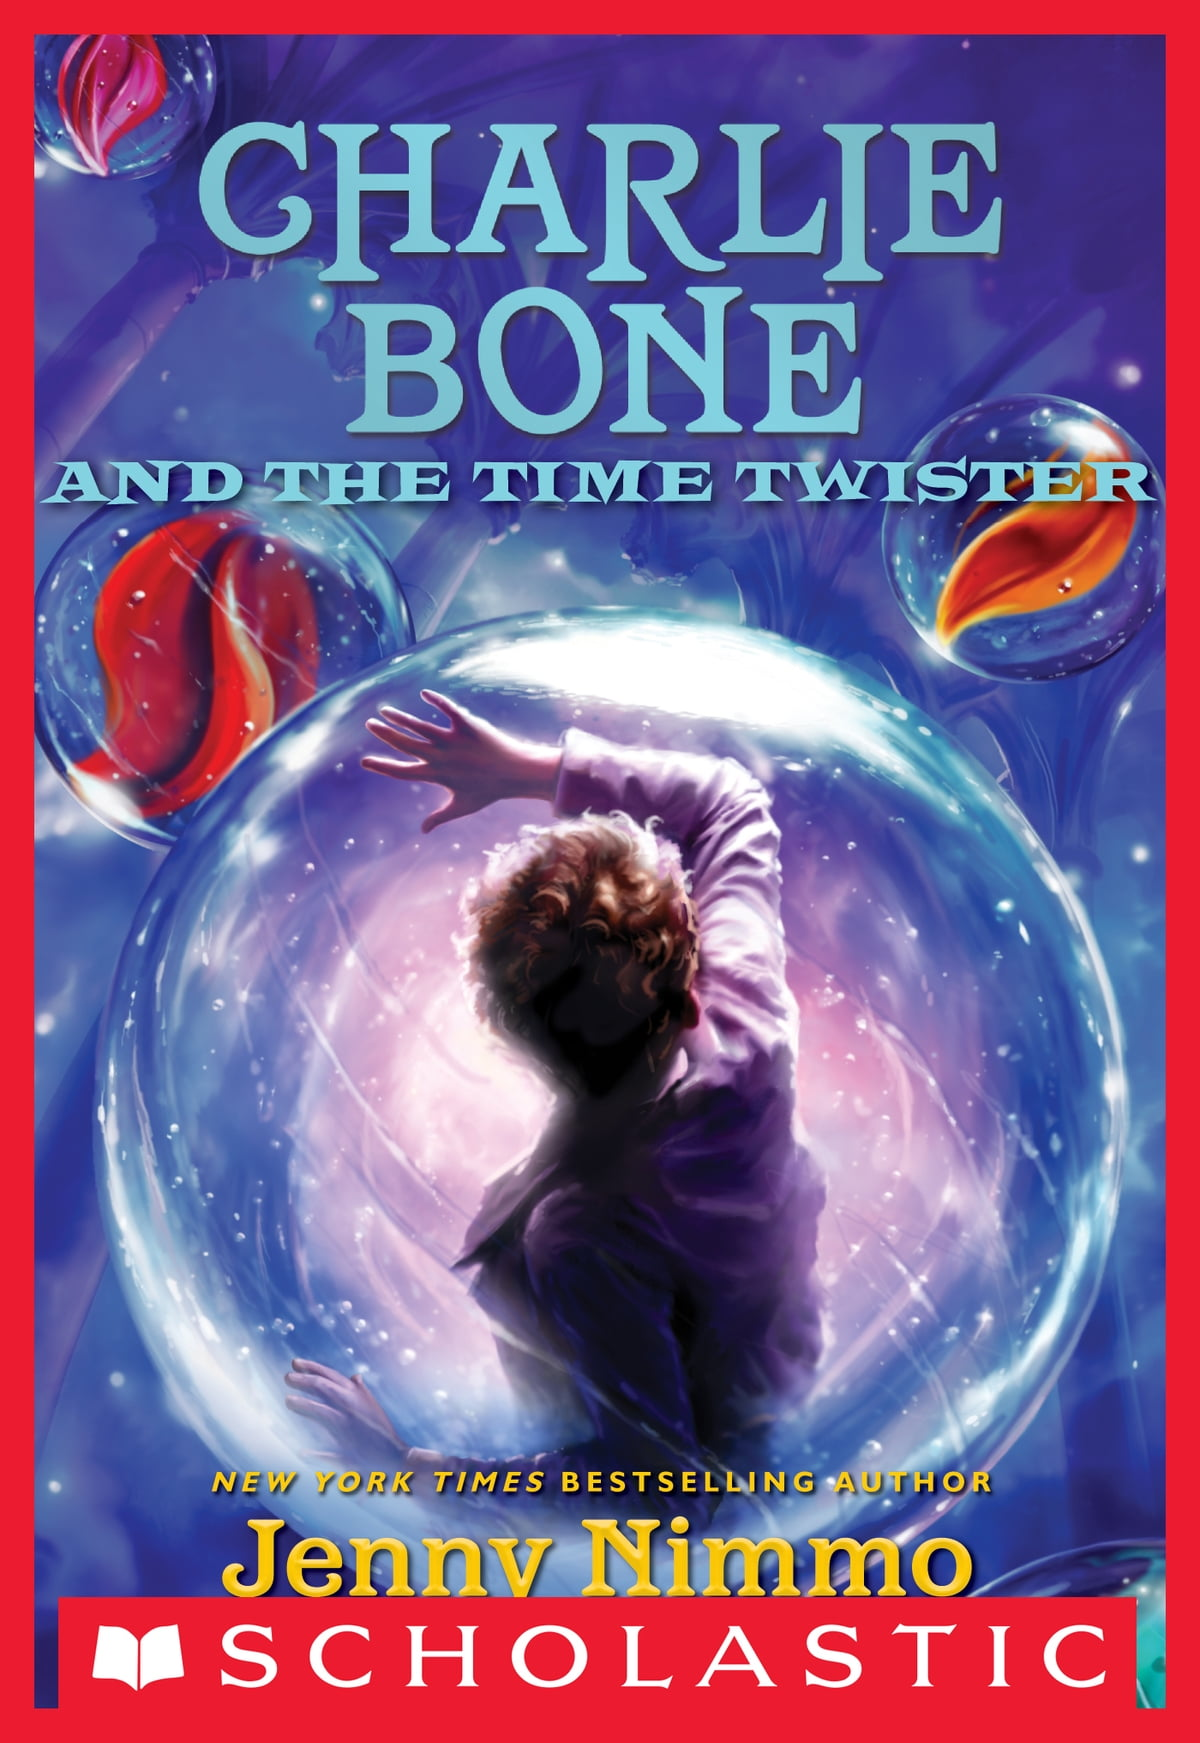 Children Of The Red King #2: Charlie Bone And The Time Twister Ebook By  Jenny Nimmo  9780545520911  Rakuten Kobo